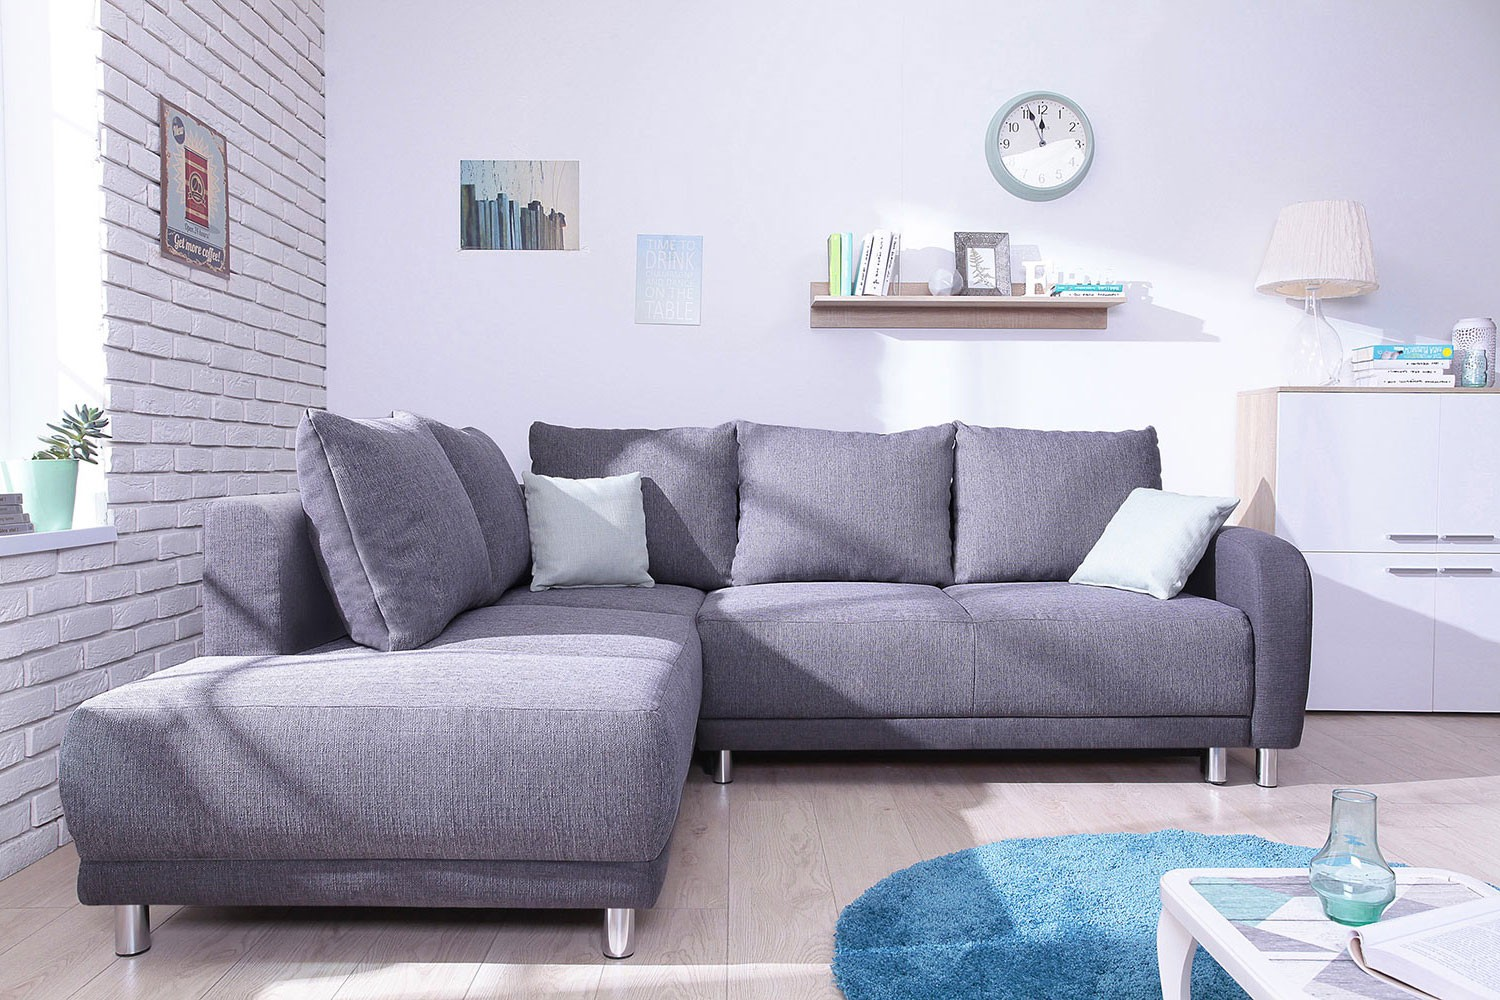 Minty Grand Angle gauche - Canapé convertible scandinave Bobochic bicolore gris anthracite